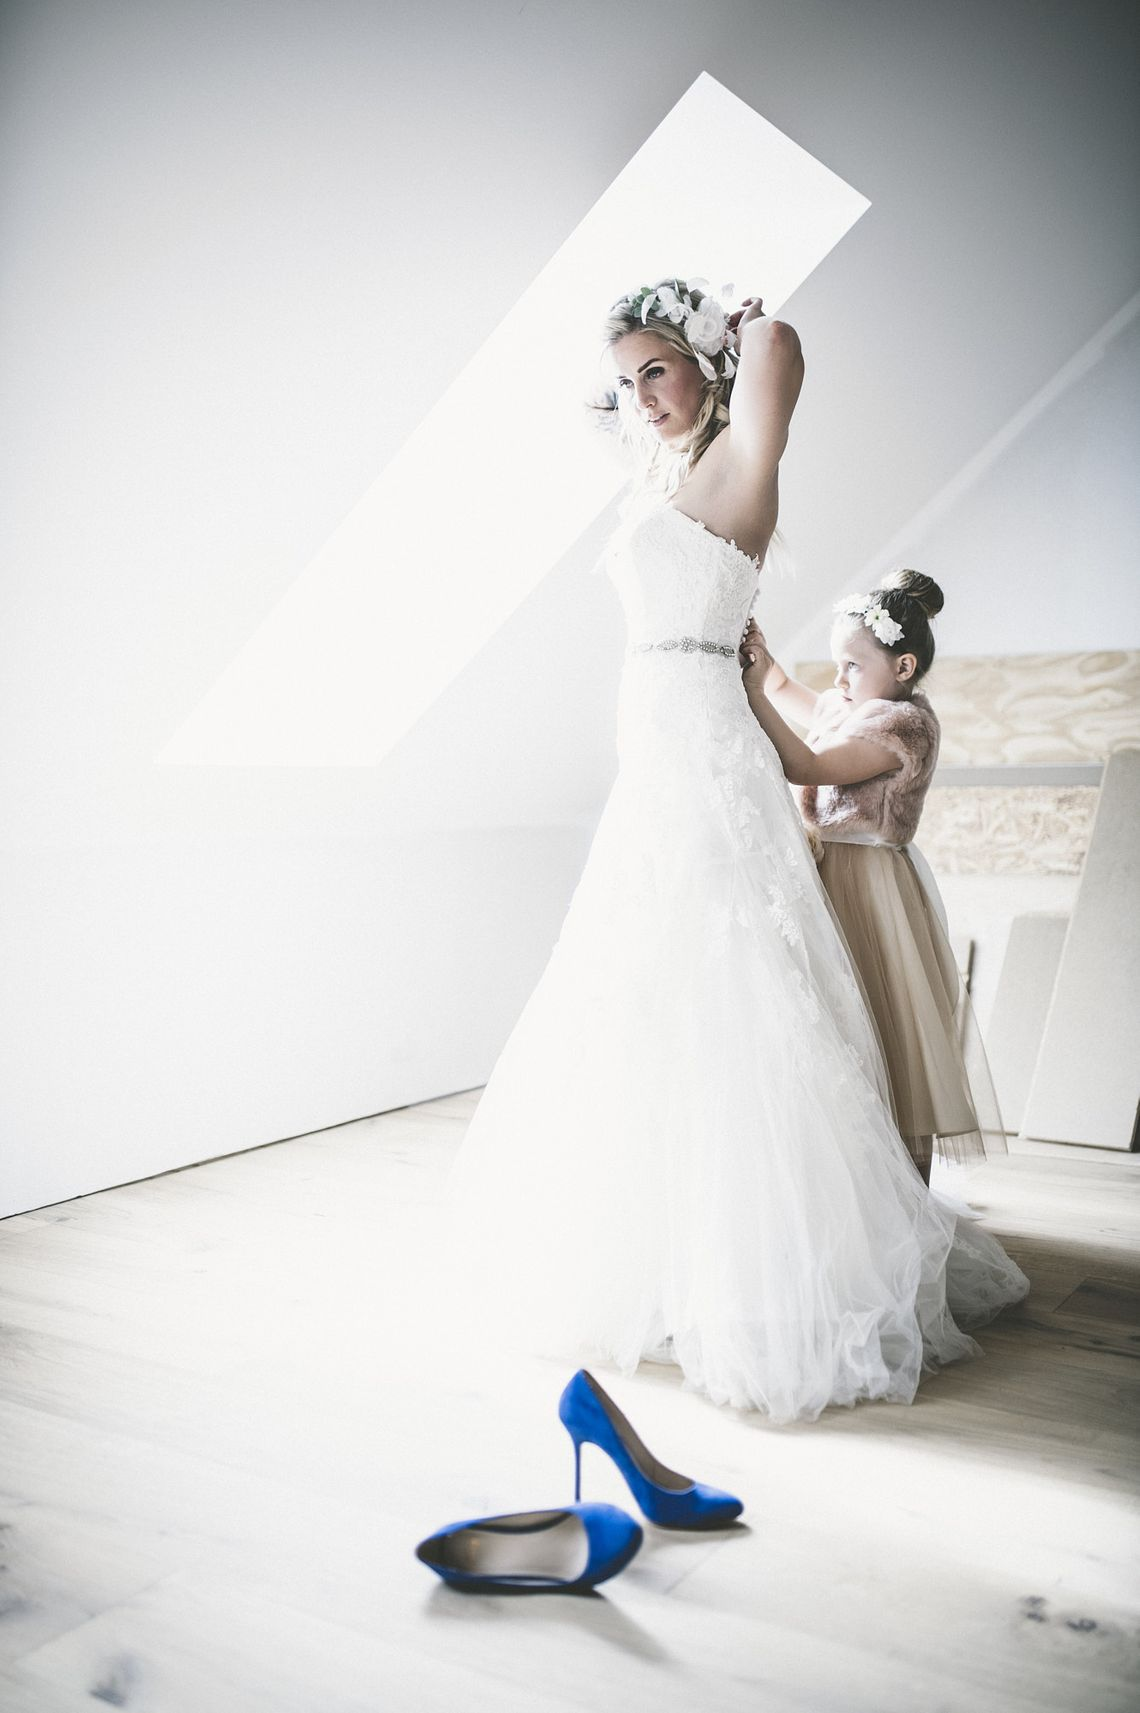 bride, wedding party, brudfölje, förberedelser, wedding preparations, hair, håruppsättning, wedding, dress, blue, shoes, high heels,